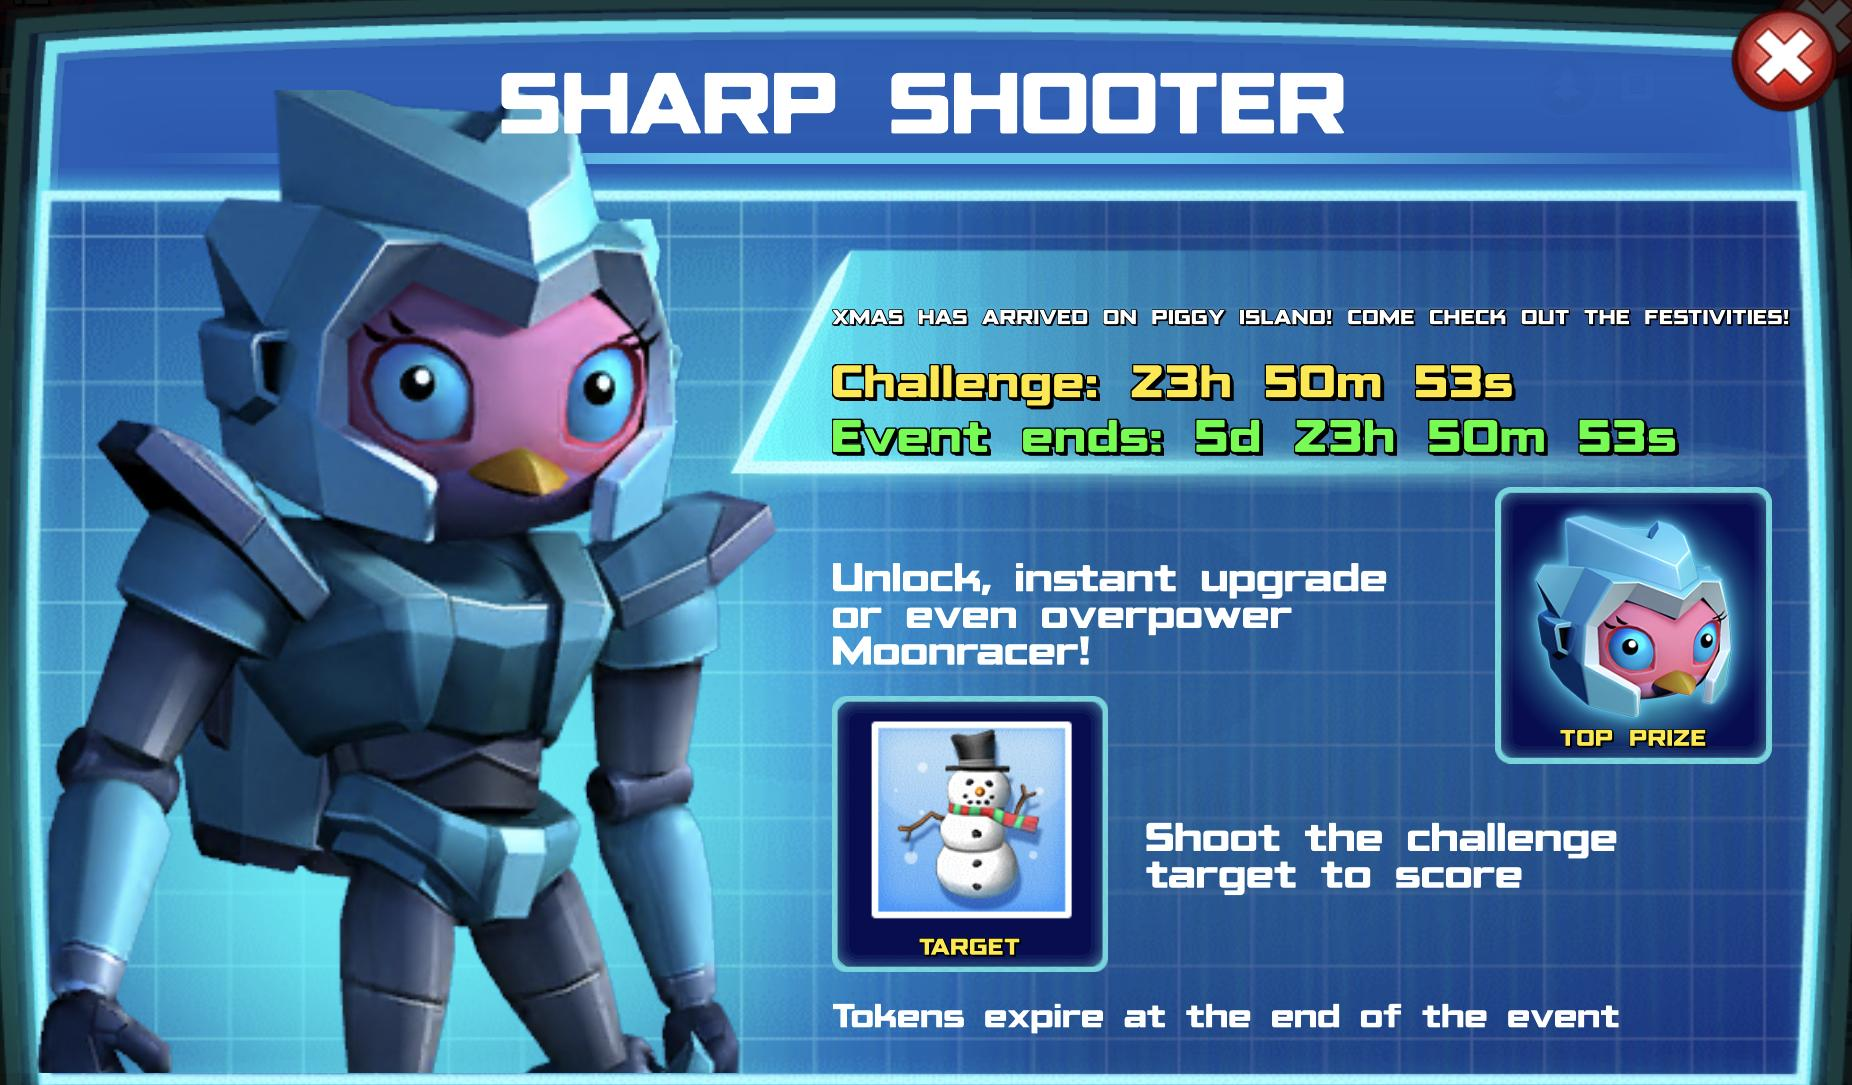 The event banner for Sharp Shooter